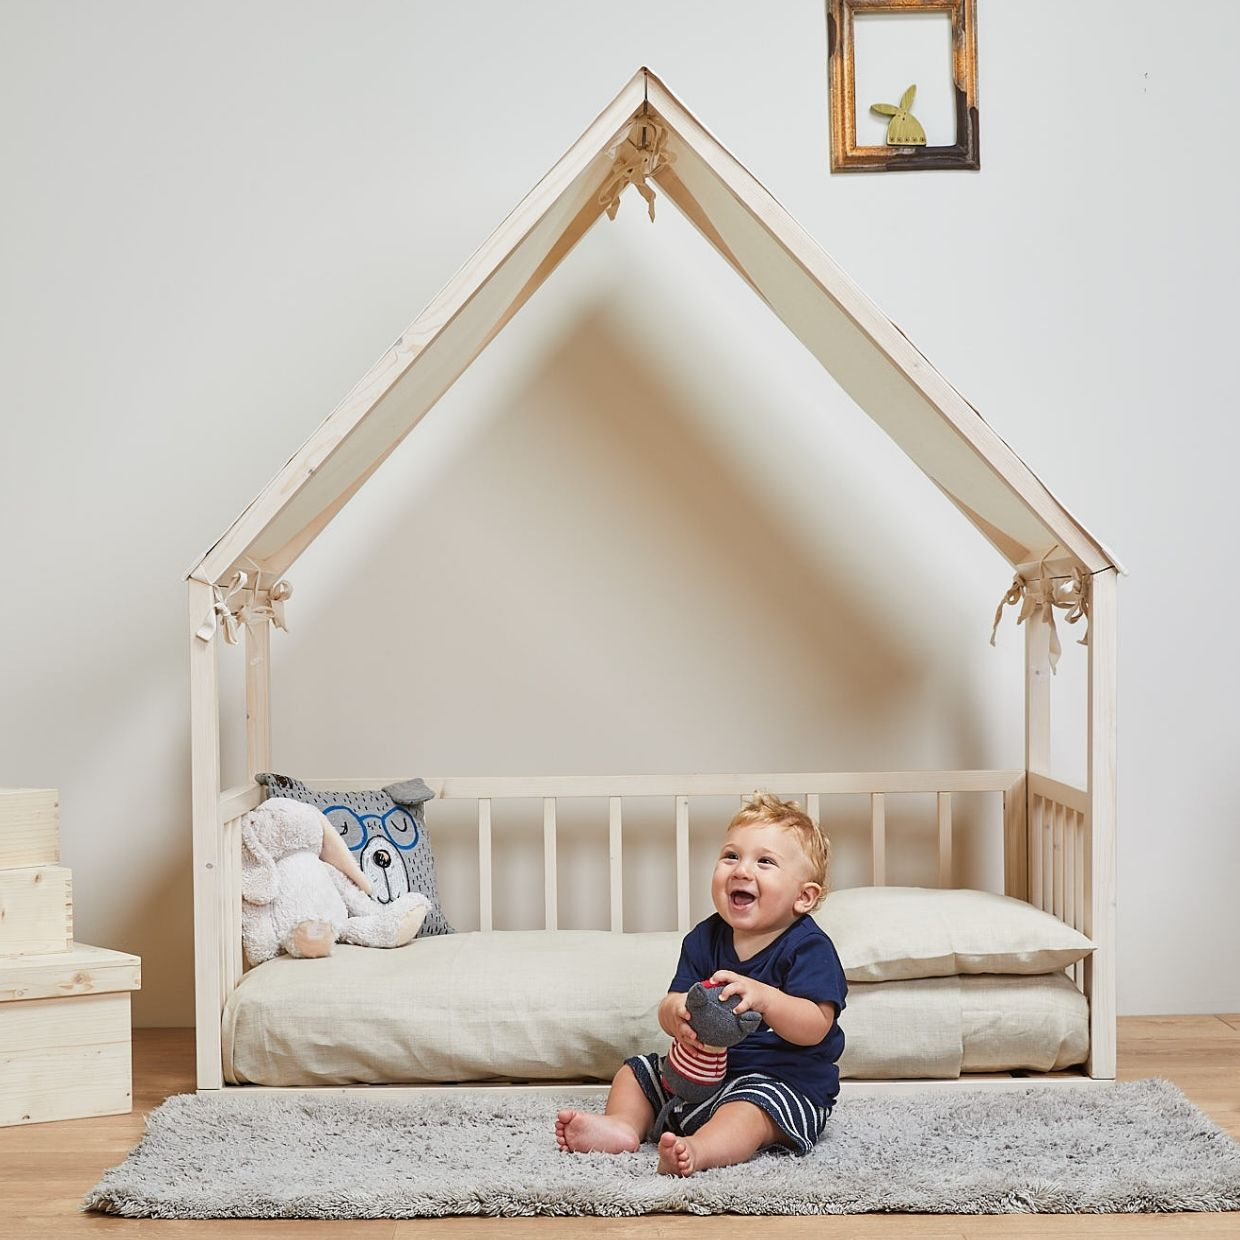 Montessori Kids Bed Cheaper Than Retail Price Buy Clothing Accessories And Lifestyle Products For Women Men